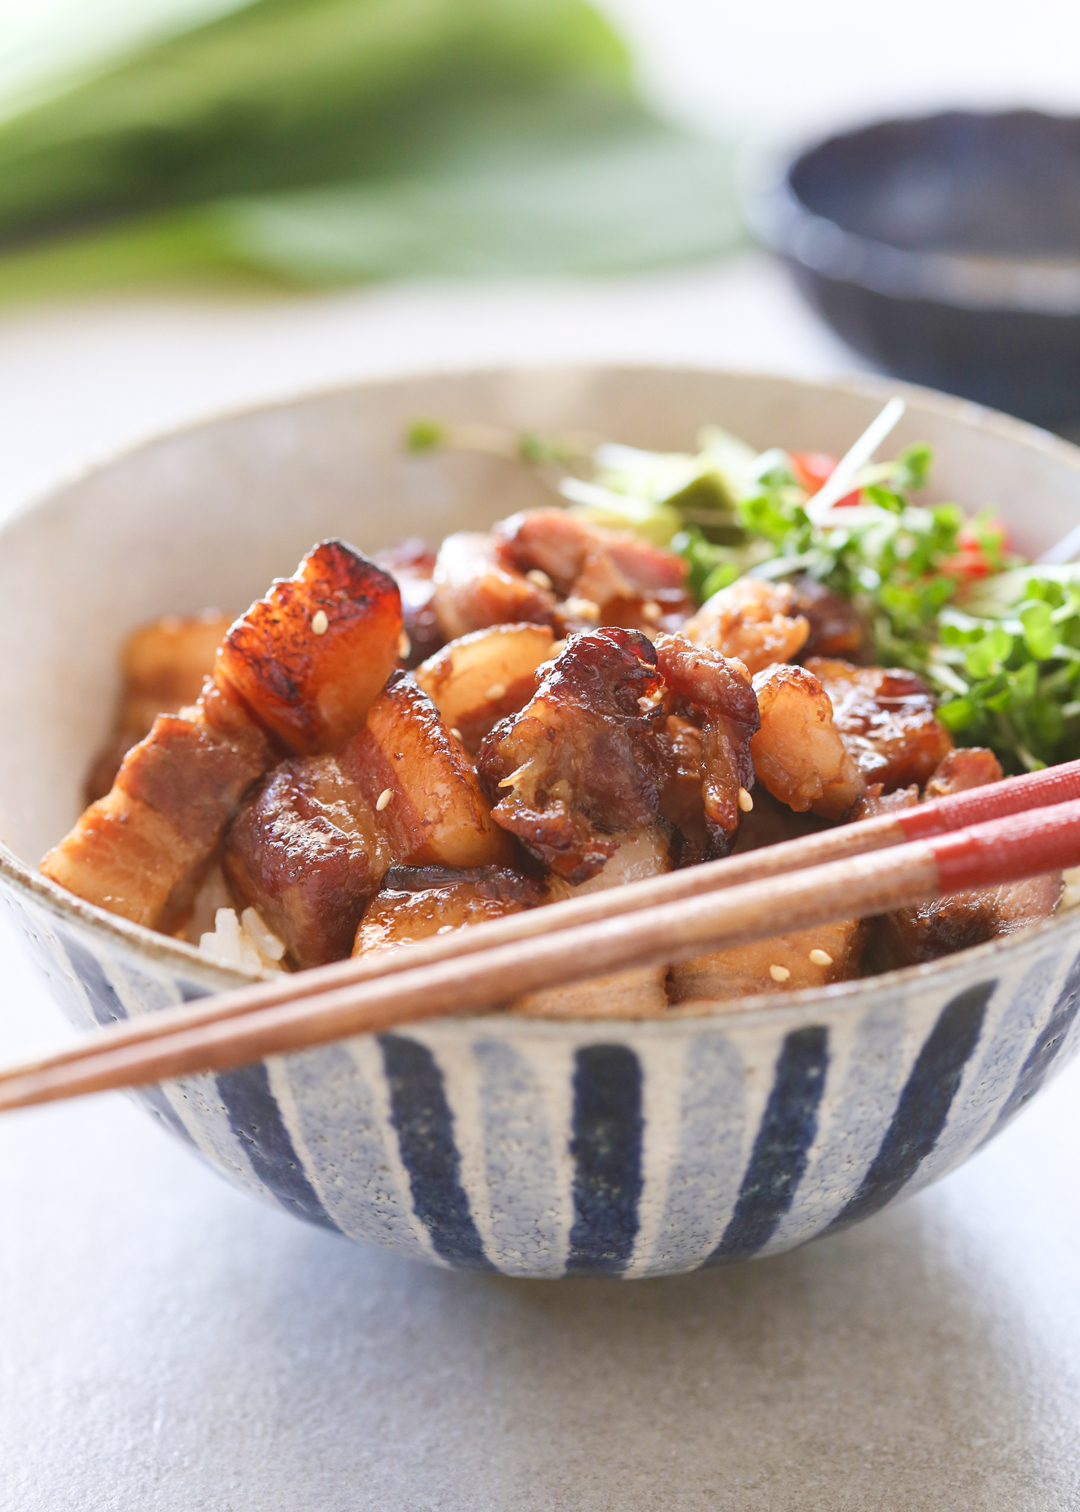 How to serve Japanese Char Siu pork